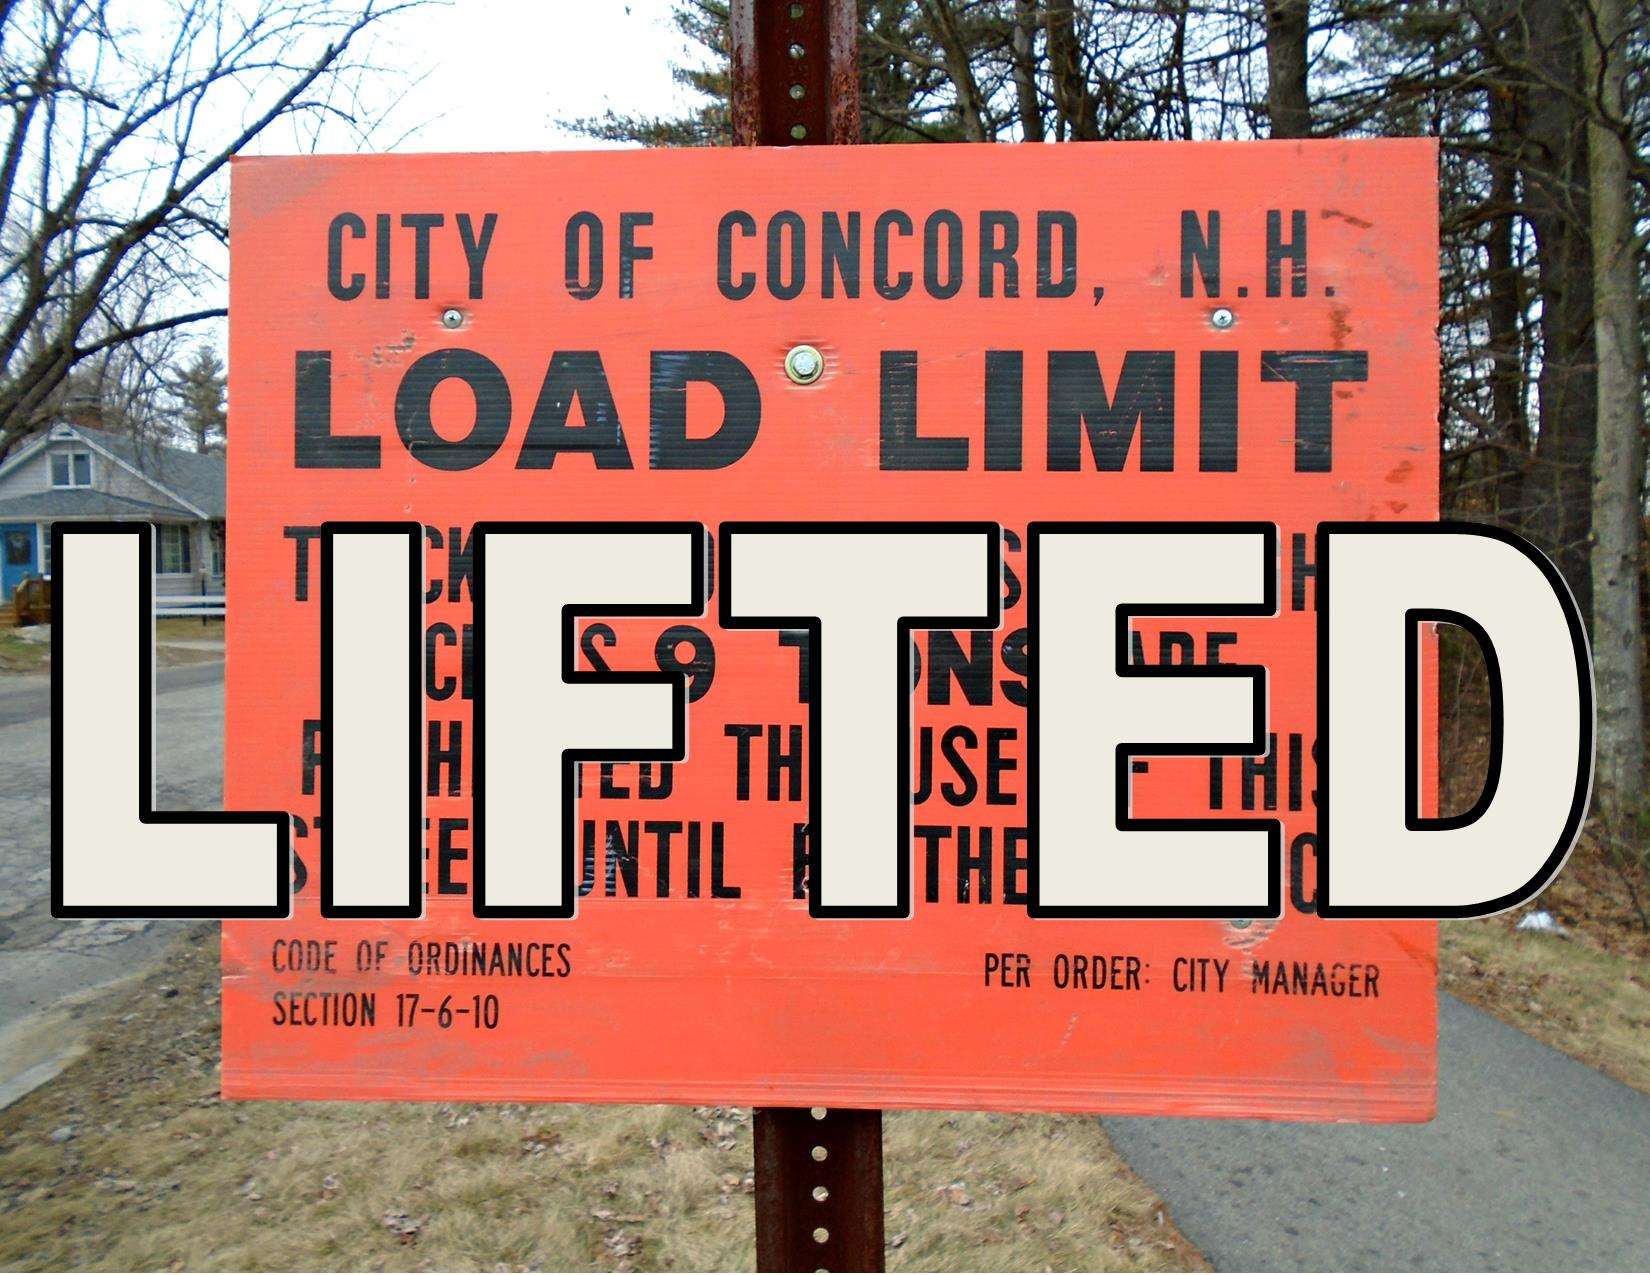 Road Load Limits Lifted